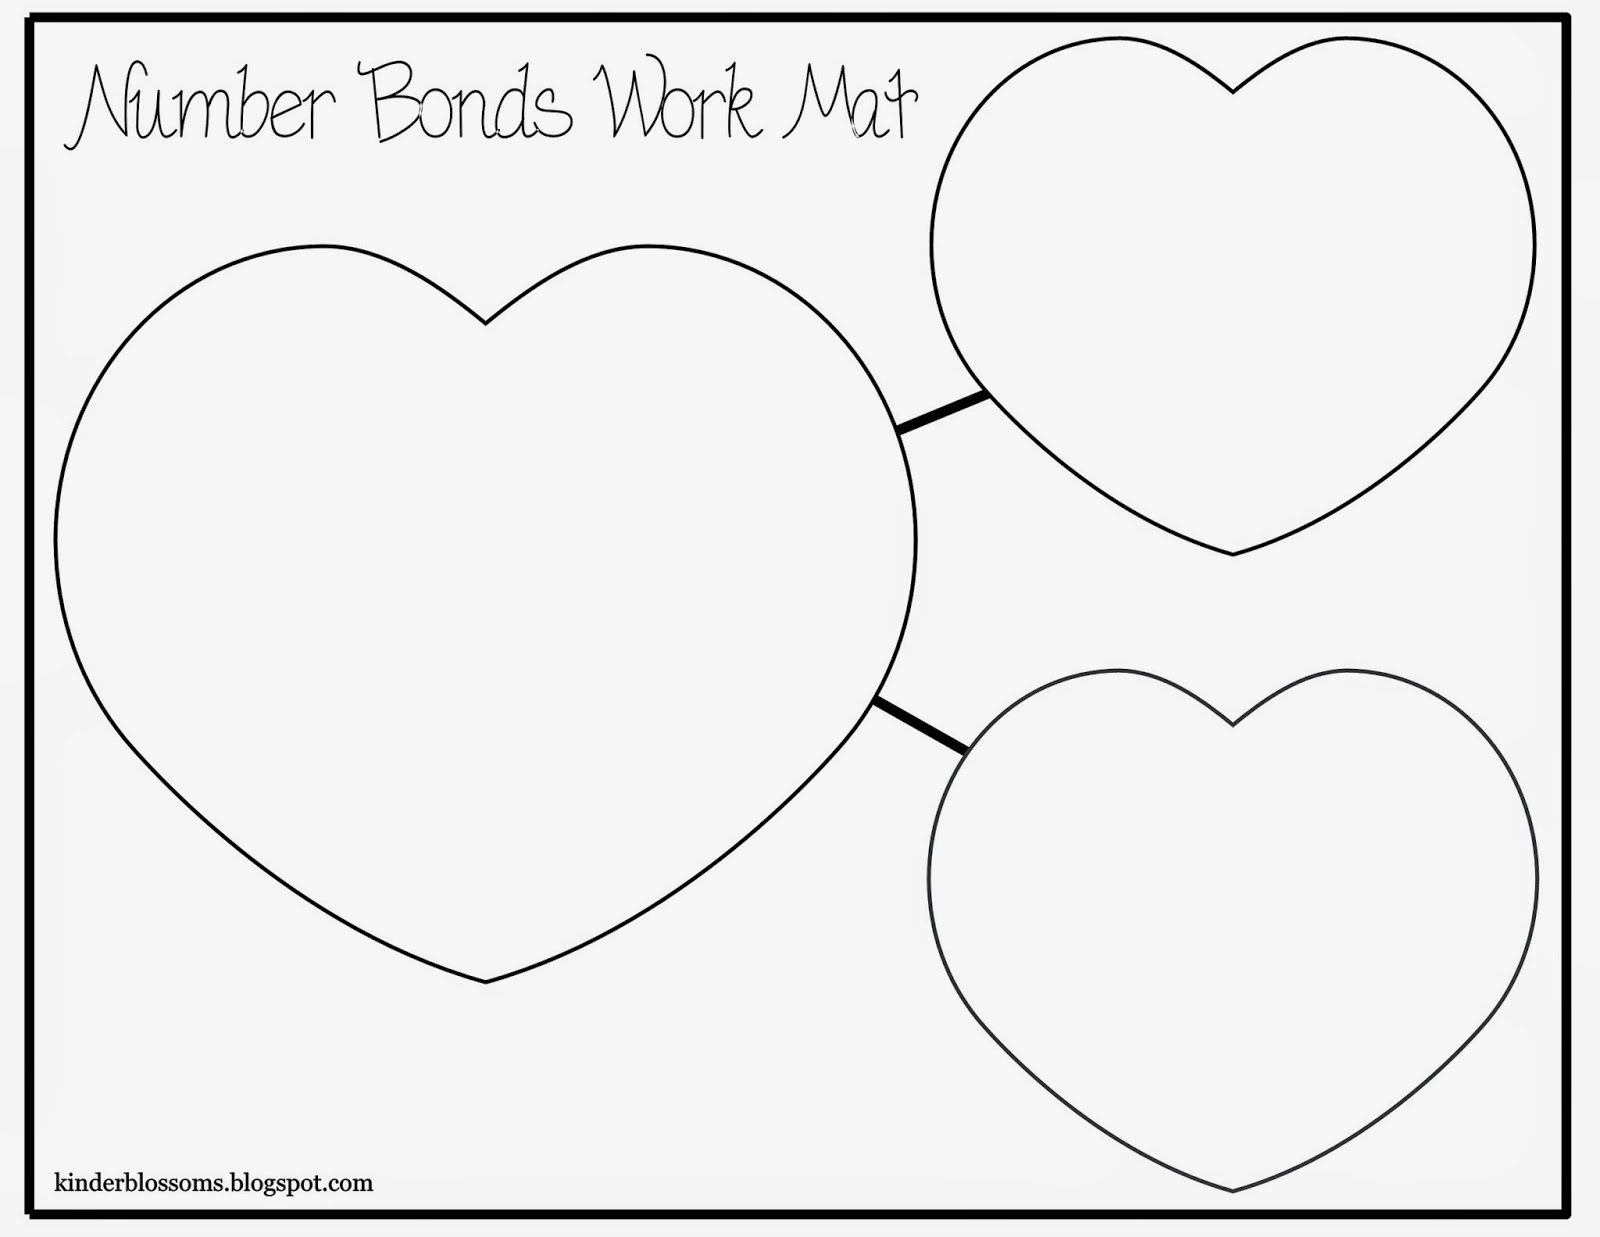 Number Bonds Worksheets | Printable Number Bonds Worksheets